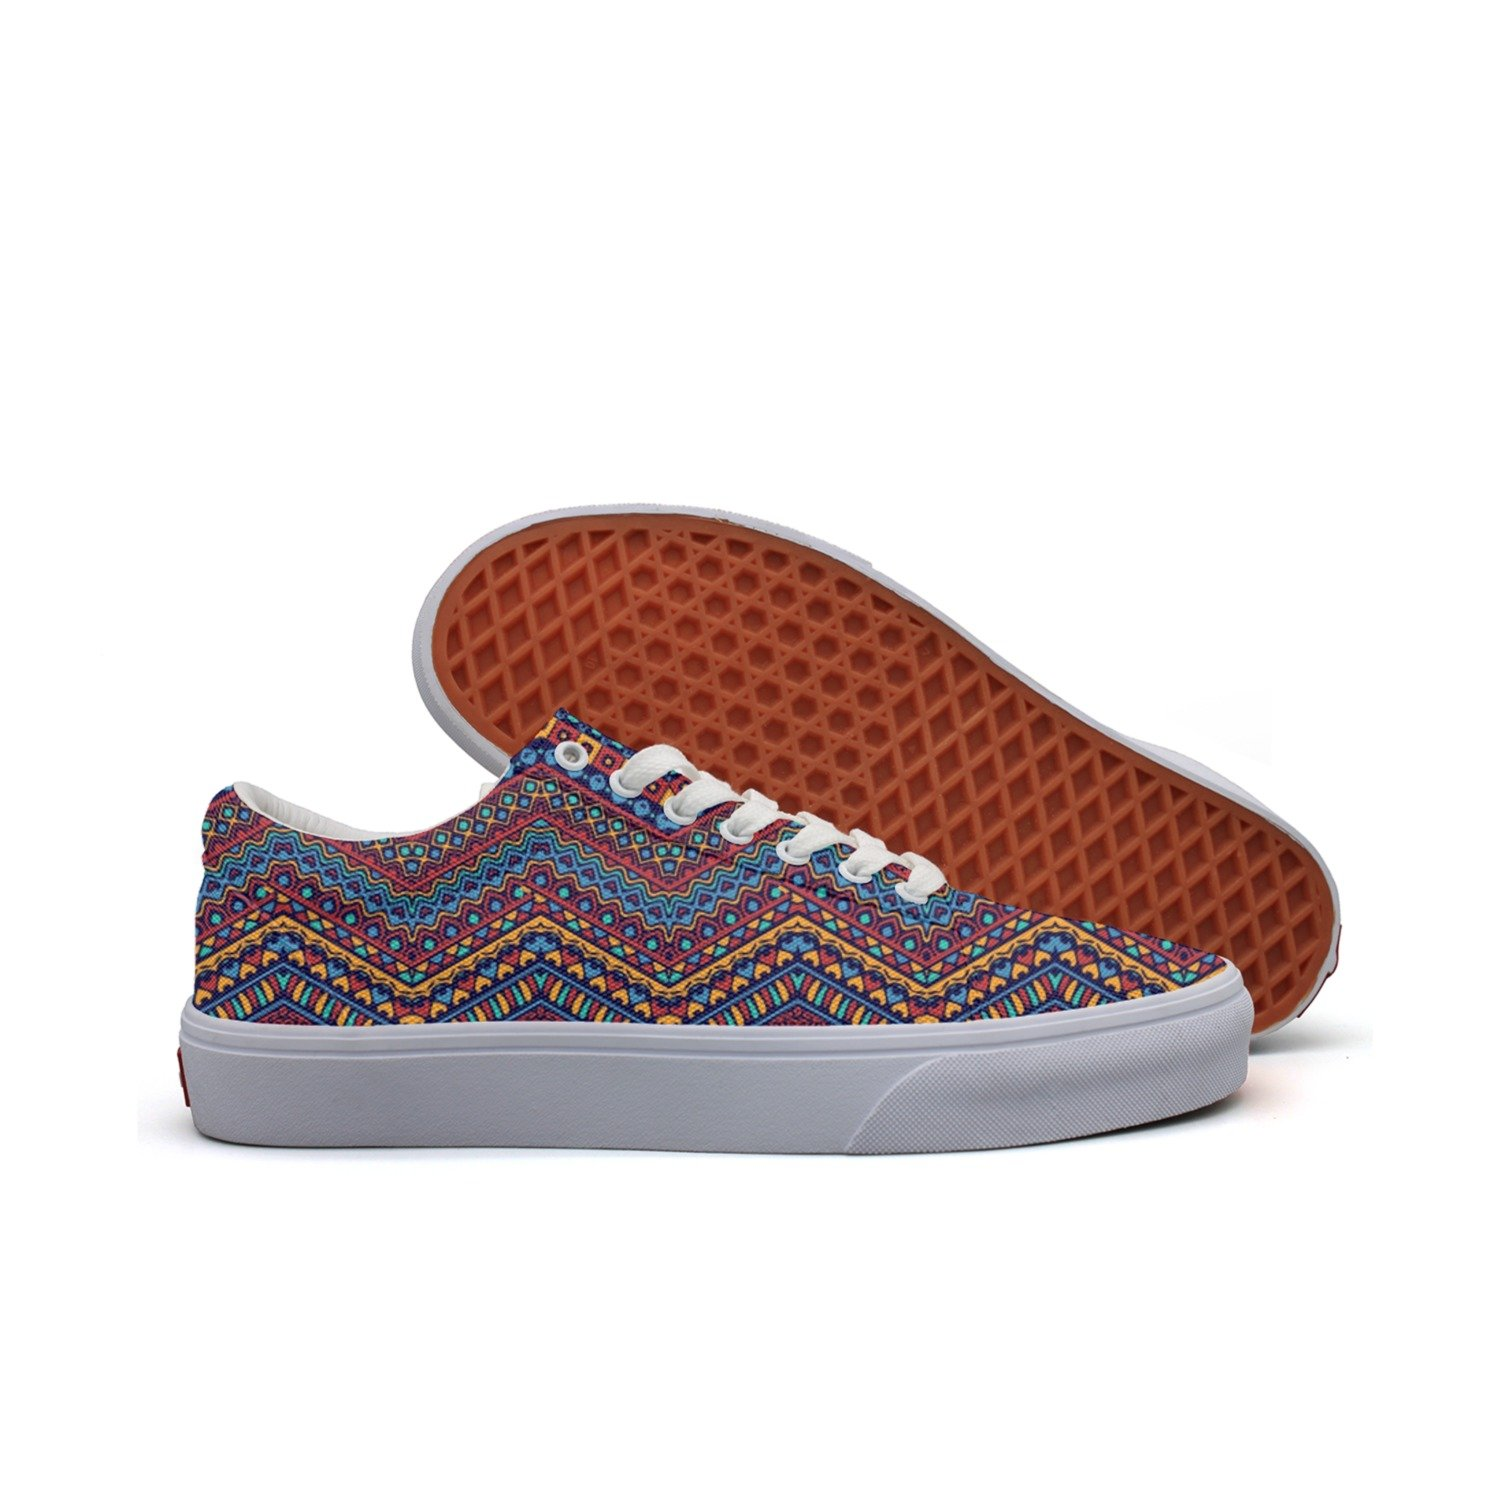 SERXO African Style Tribal Motifs Women¡s Casual Shoes Sneakers Slip-On Lo-Top Low Top Trainers